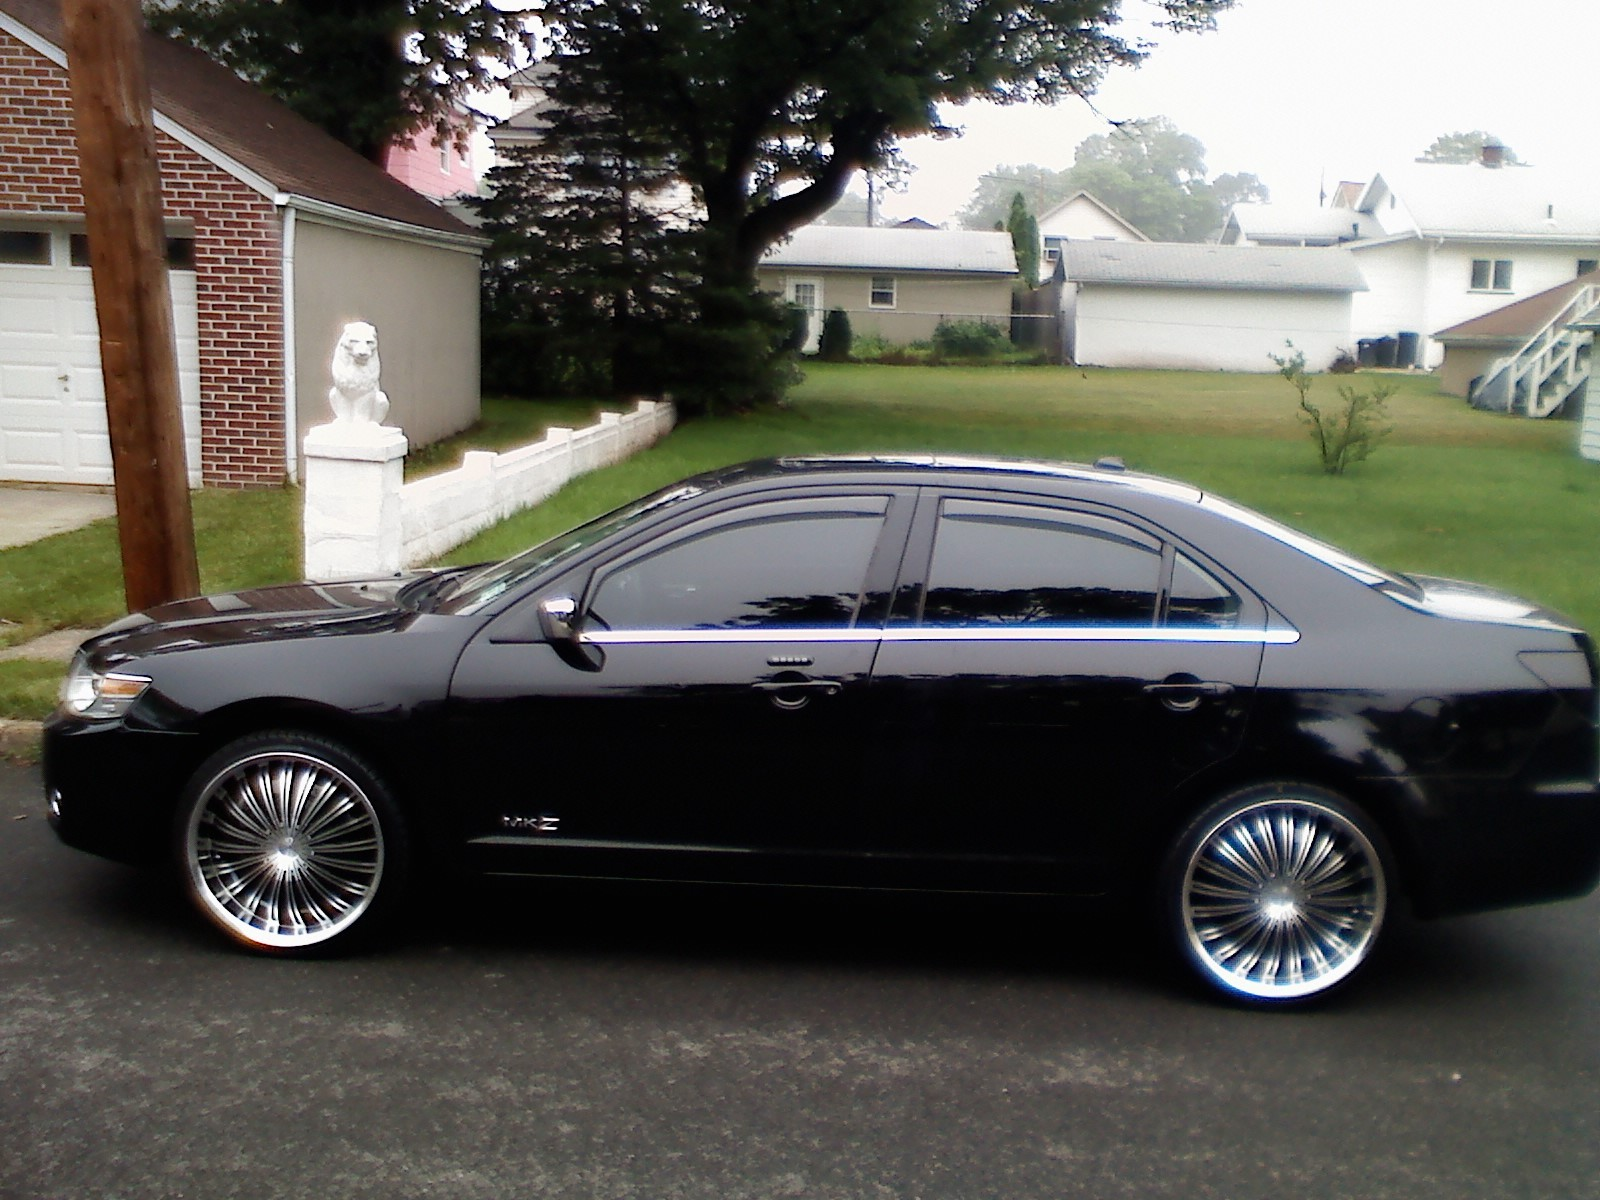 2008 Lincoln Mkz Hybrid Car Pictures